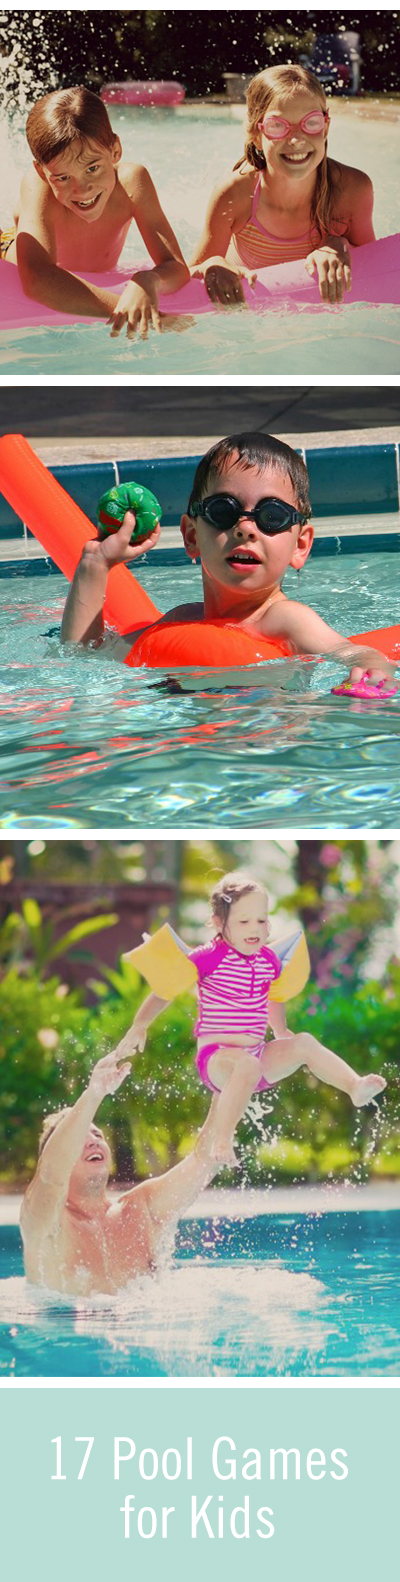 17 Swimming Pool Games for Kids This Summer Games for